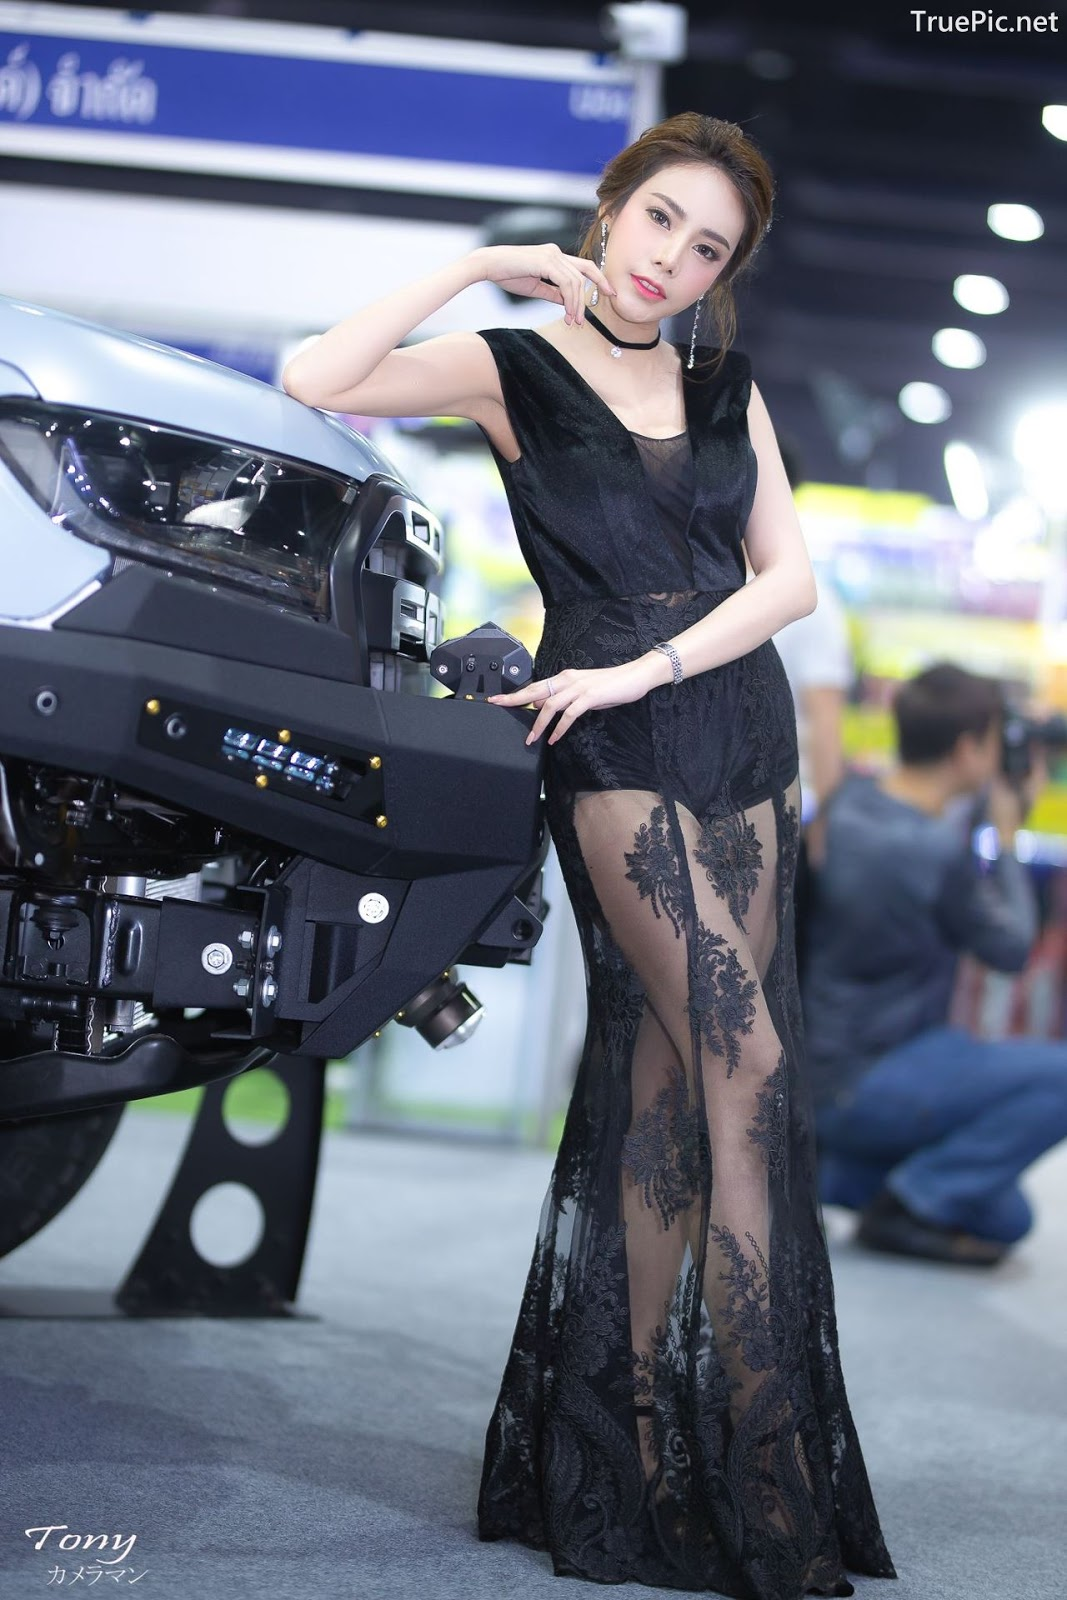 Image-Thailand-Hot-Model-Thai-Racing-Girl-At-Motor-Expo-2018-TruePic.net- Picture-7